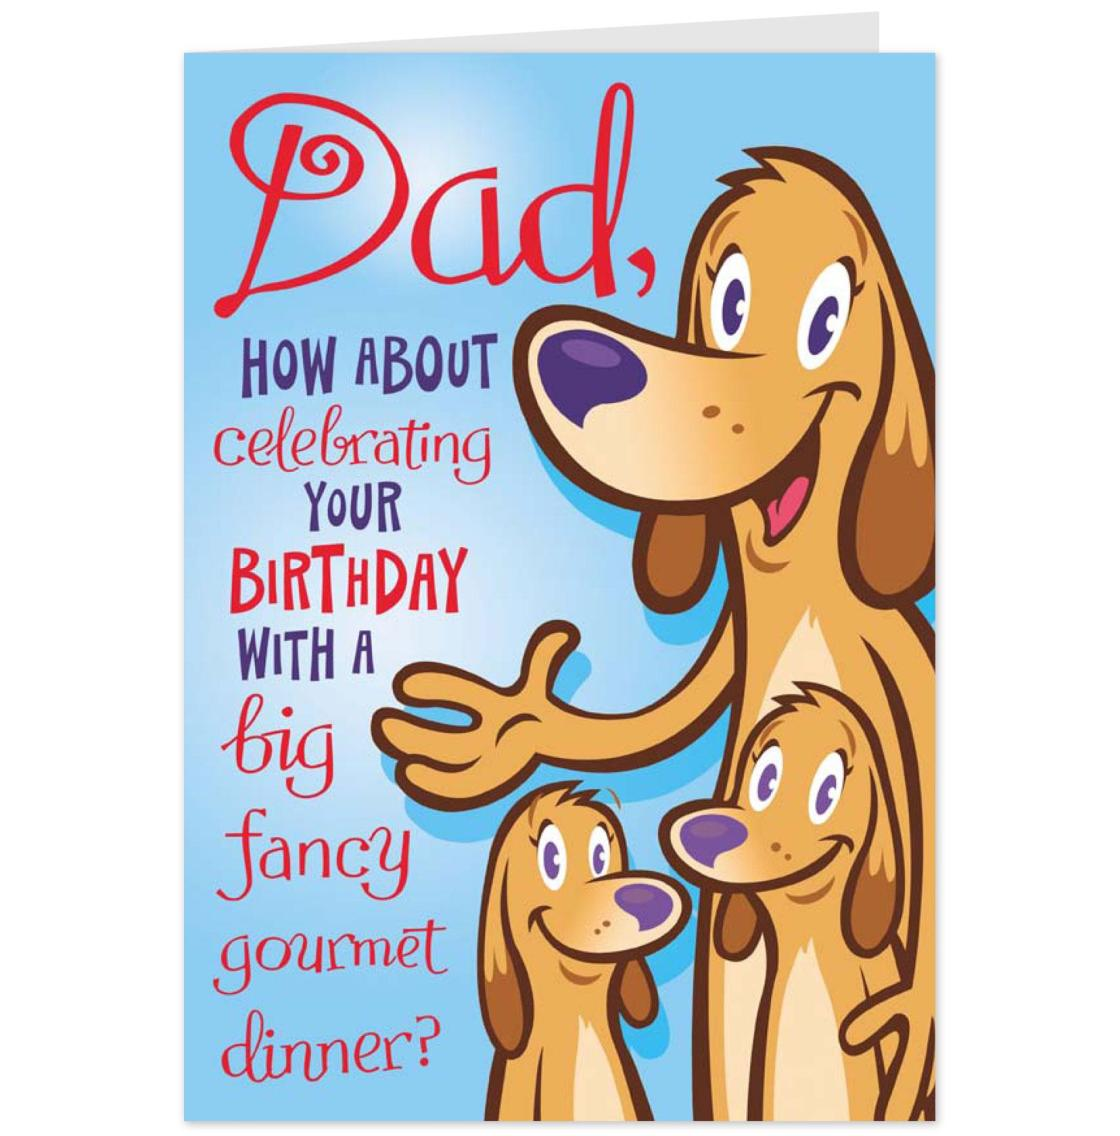 Birthday wishes for father ecards images page 67 funny invitation card of dad birthday bookmarktalkfo Choice Image